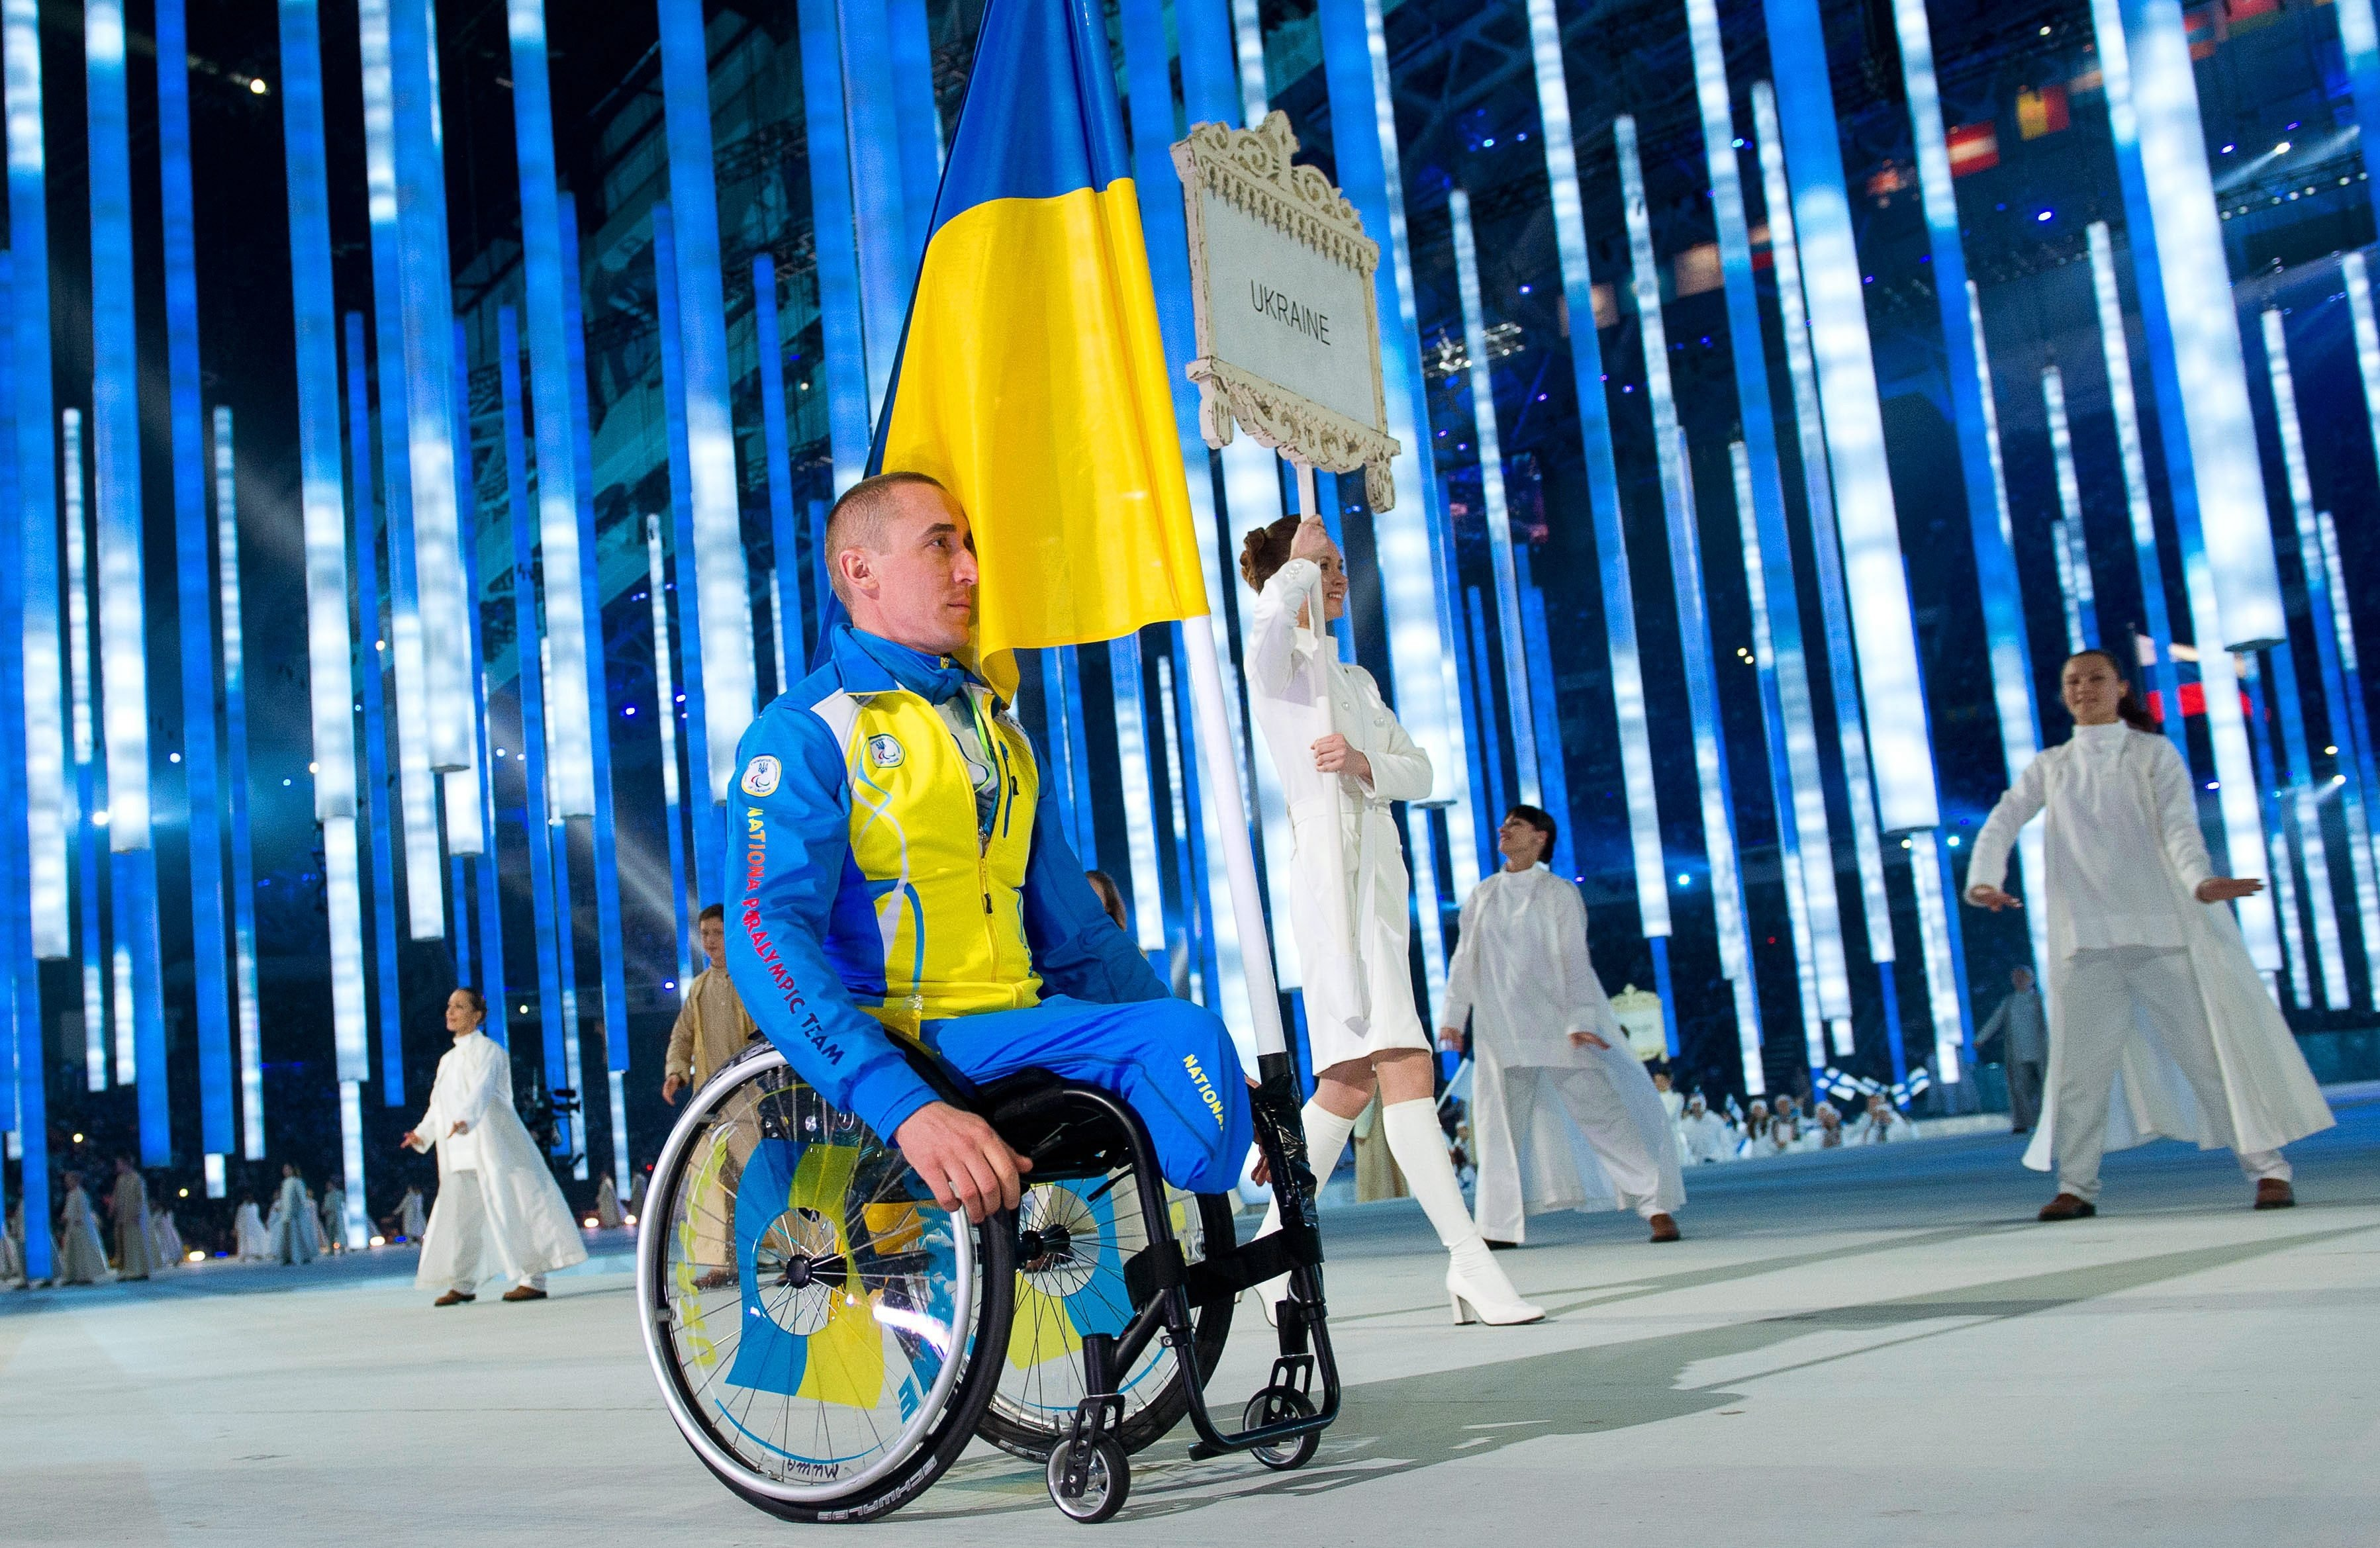 Flag bearer Mykhaylo Tkachenko of Ukraine attends the Opening Ceremony of the Sochi 2014 Winter Paralympic Games at Fisht Olympic Stadium in Sochi, Russia, March 07 2014.